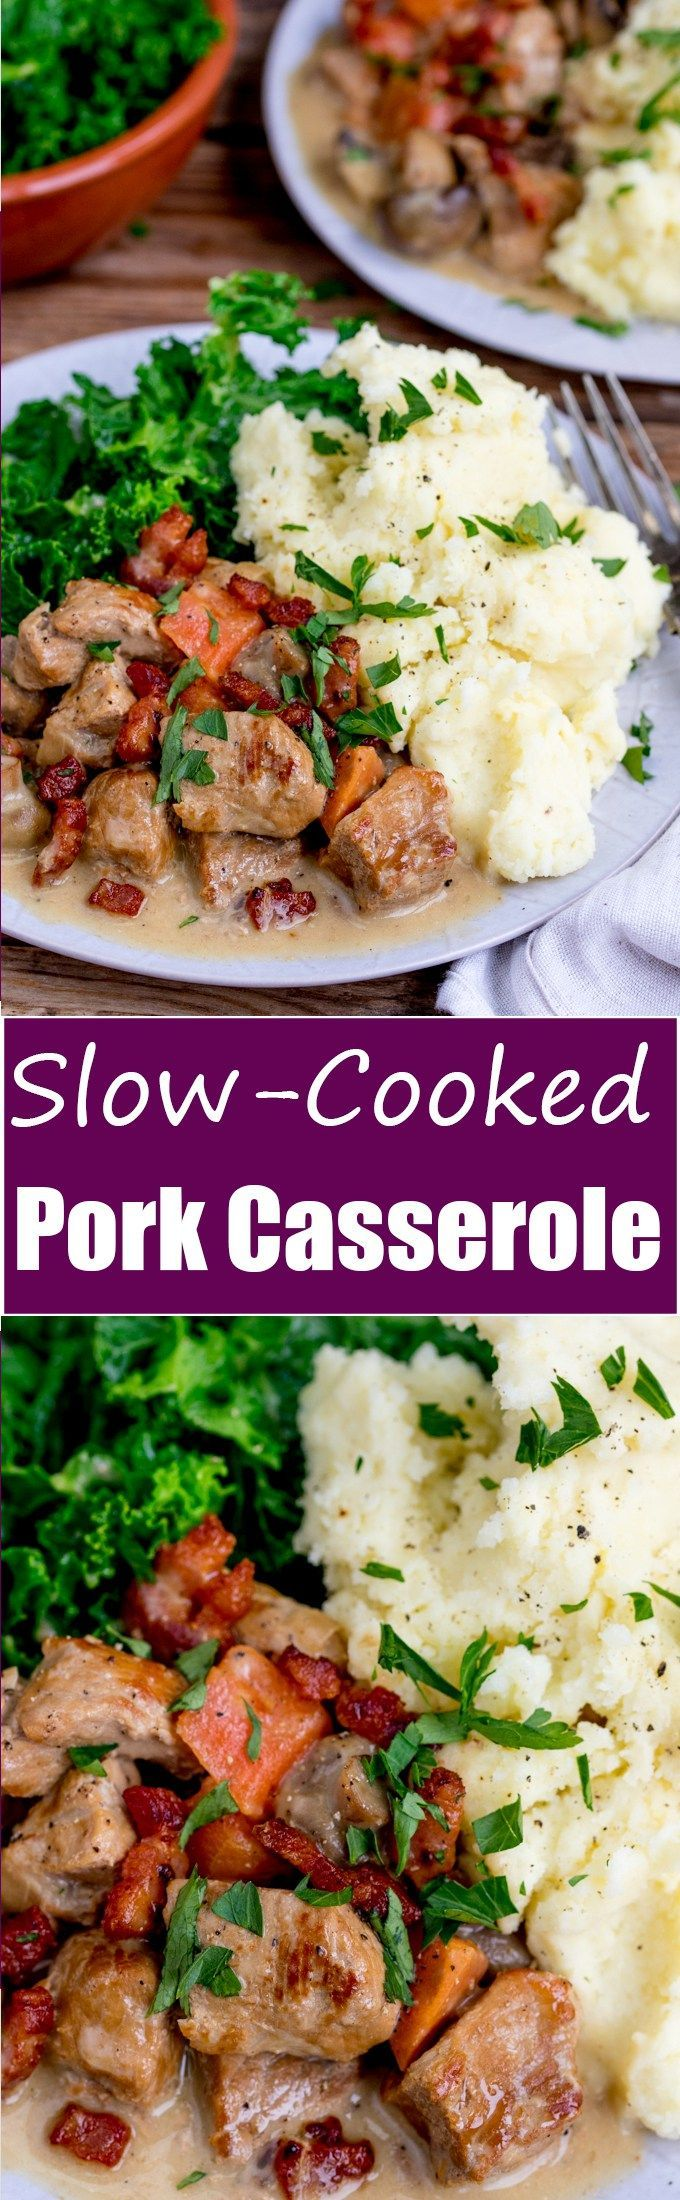 Creamy Slow Cooked Pork Casserole - perfect comfort food! A great make-ahead meal when you're cooking for a crowd, gluten free too!